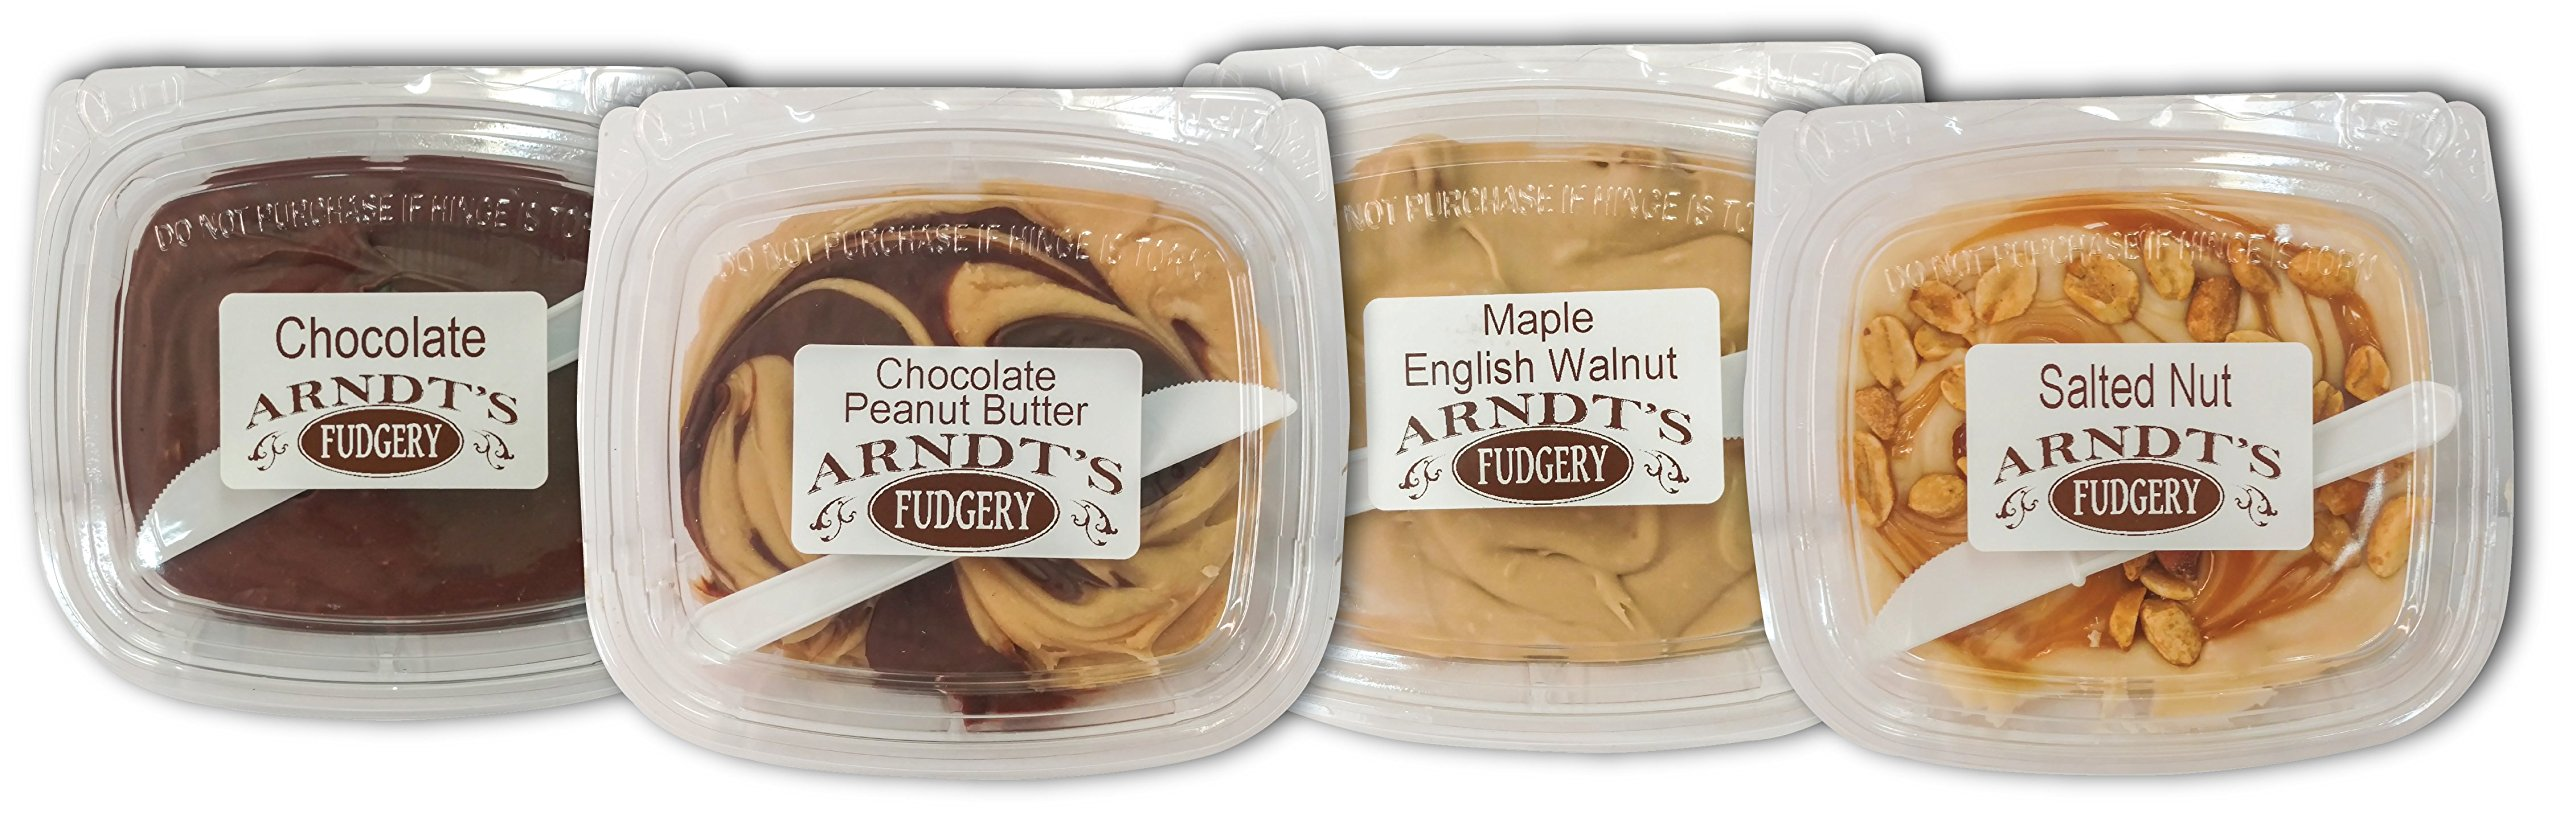 7 Oz Tubs Of Fudge (Four 7 Oz Tubs Of Fudge - Four Great Flavors) by Amish Buggy